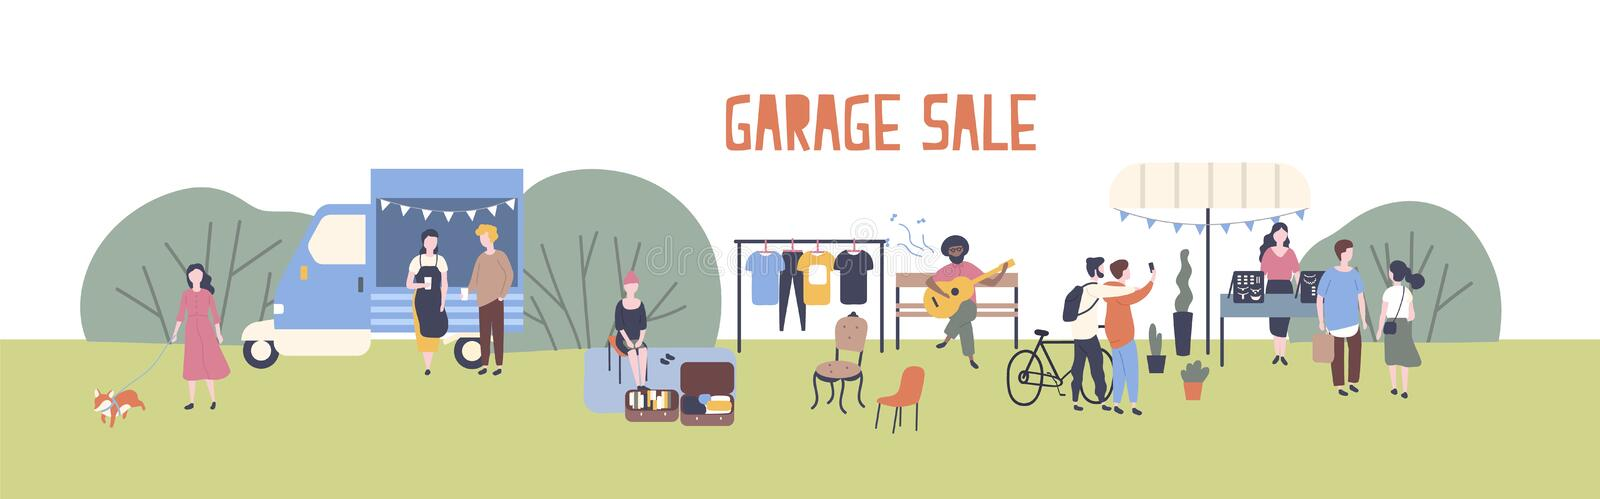 Horizontal web banner template for garage sale or outdoor festival with food van, men and women buying and selling goods vector illustration